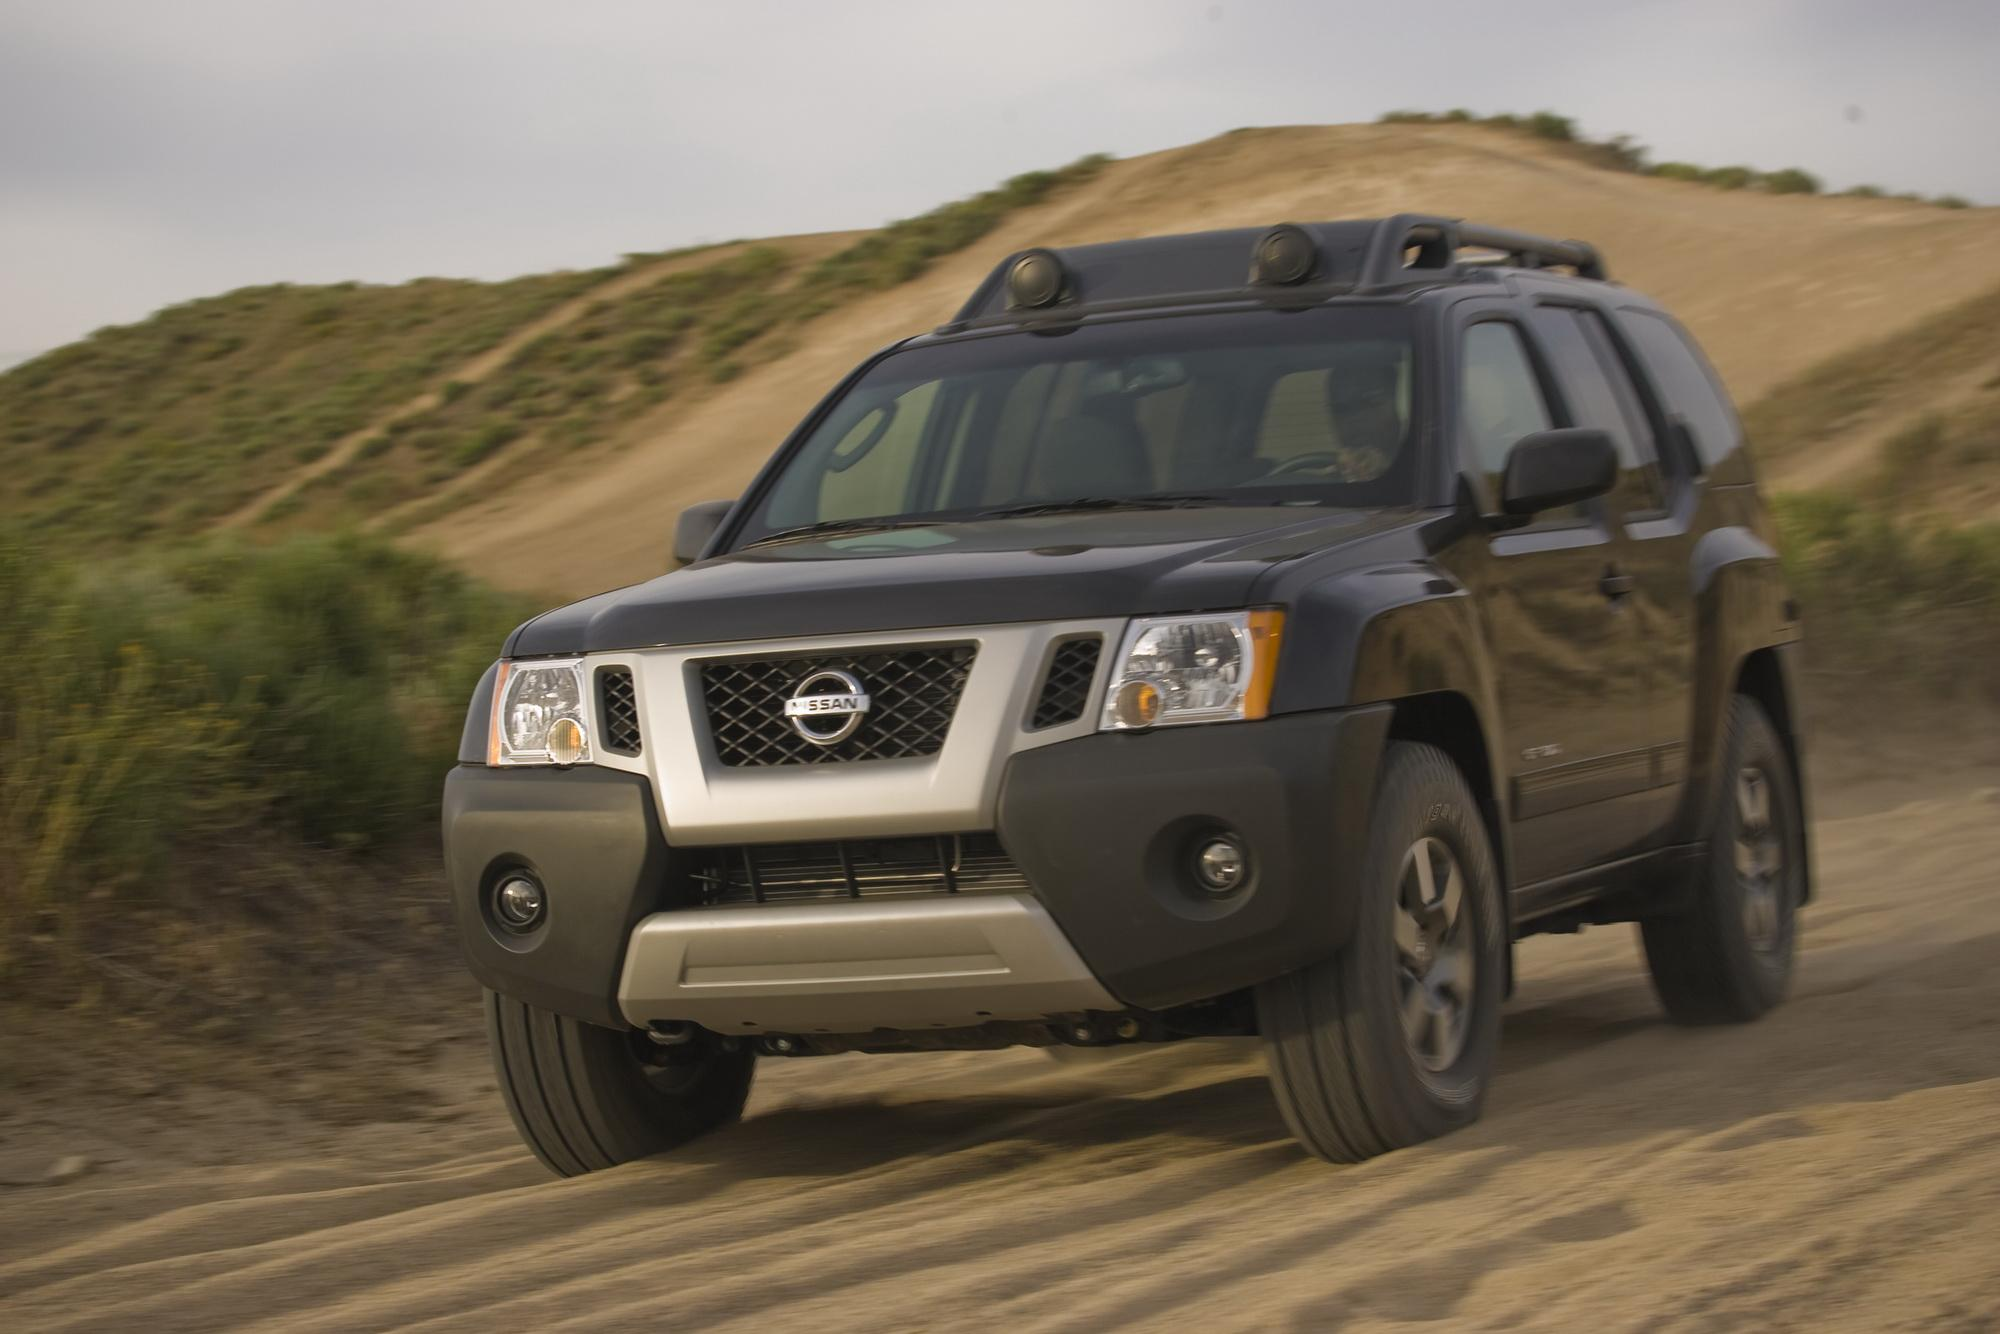 2010 Frontier, Pathfinder And Xterra Pricing Announced ...